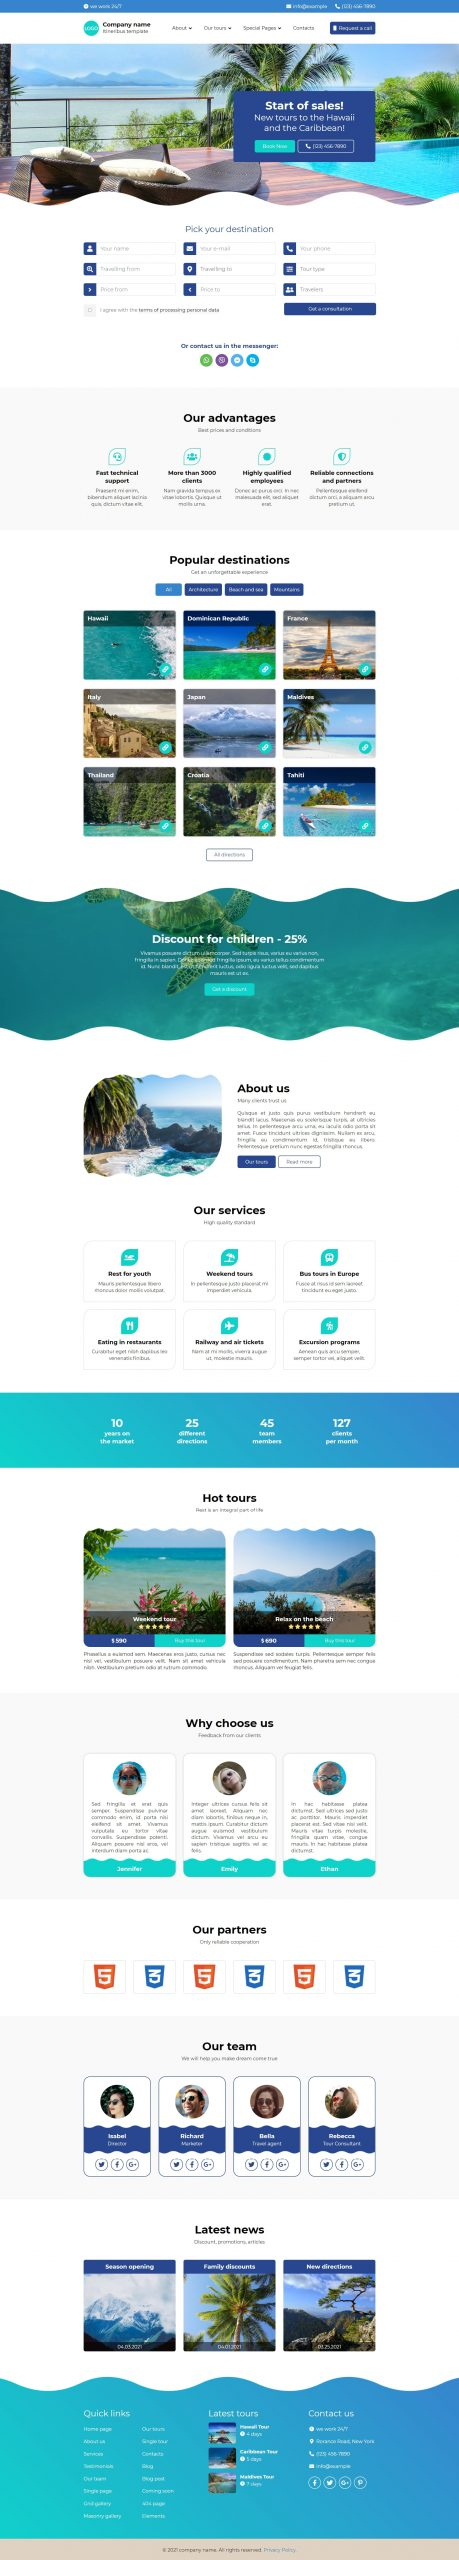 Itineribus - Tour, Travel & Travel Agency HTML5 Website Template